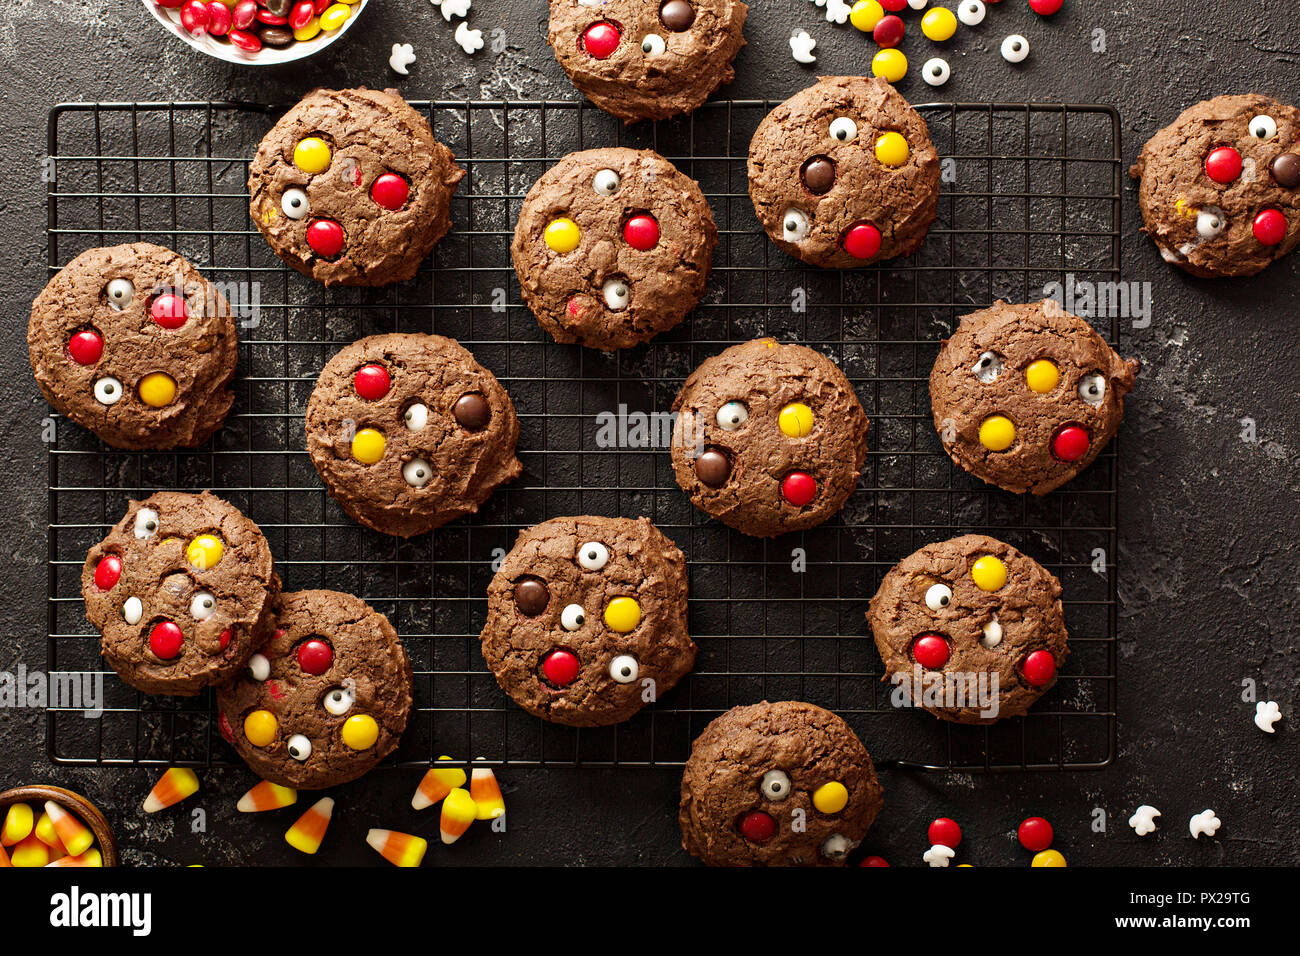 Chocolate cookies with candy and sugar eyeballs for Halloween - Stock Image